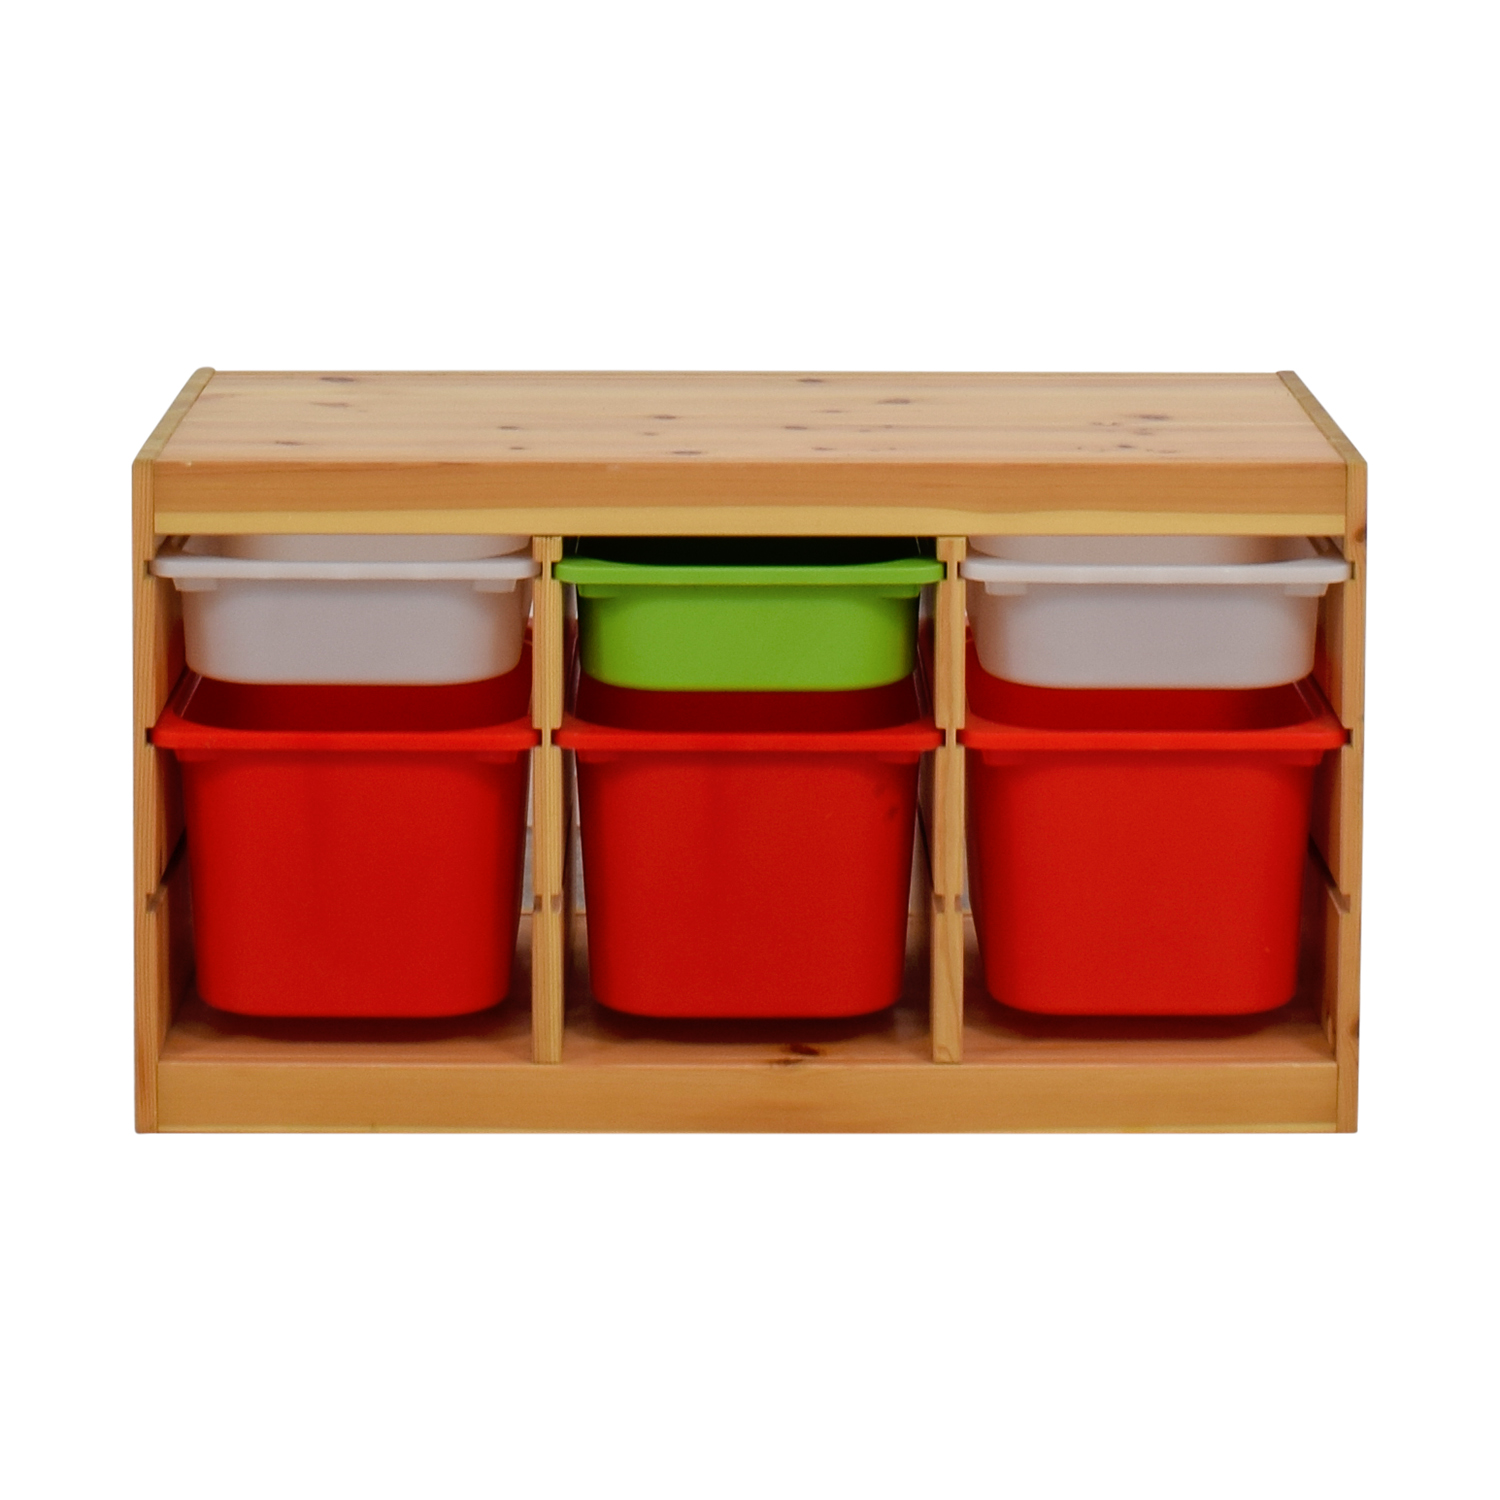 buy IKEA Child Wooden Storage with Bins IKEA Bookcases & Shelving